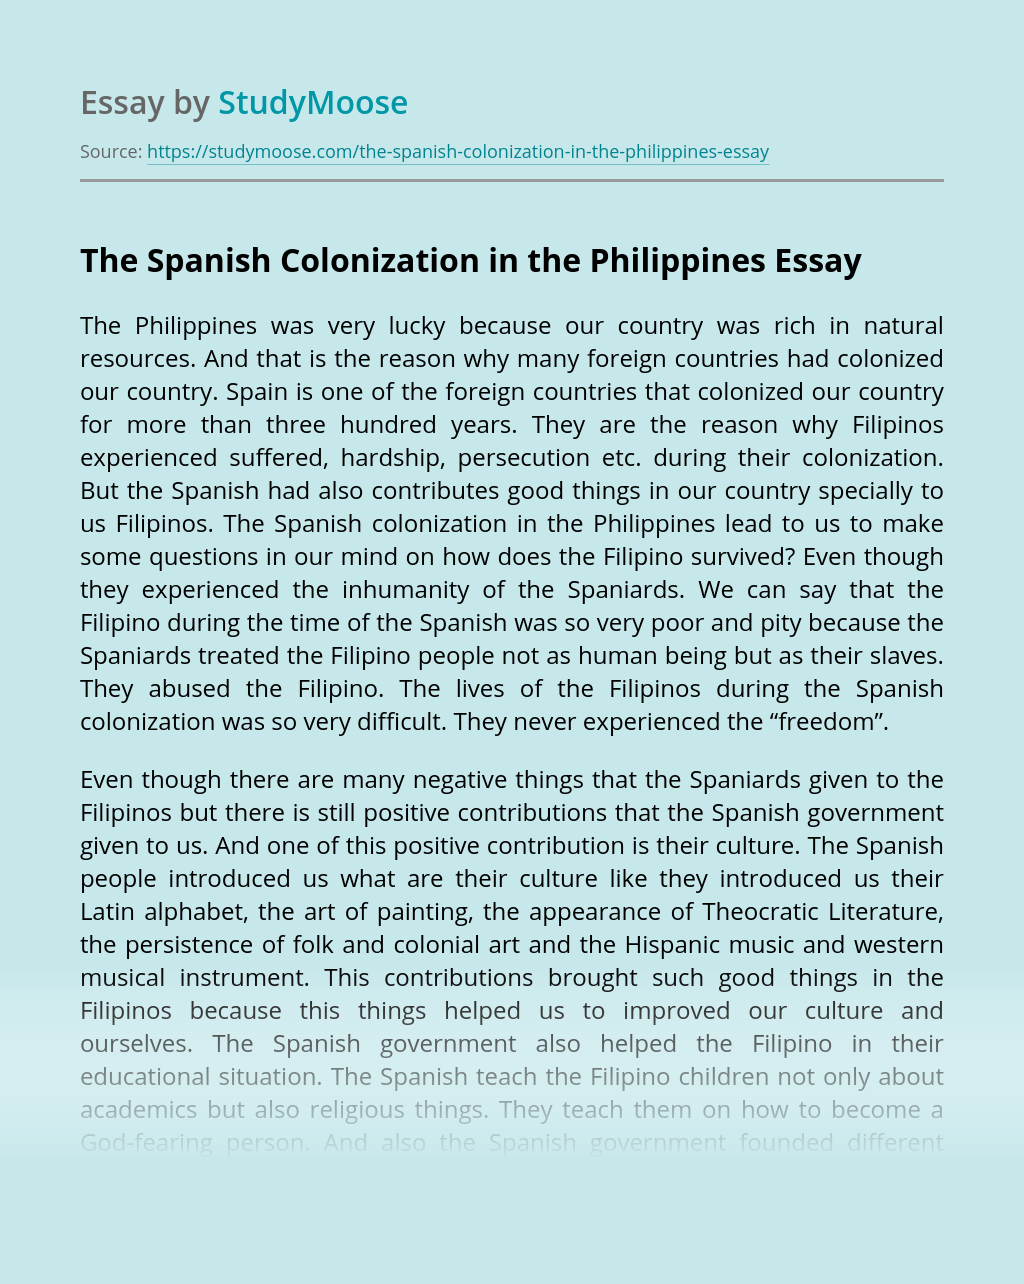 The Spanish Colonization in the Philippines